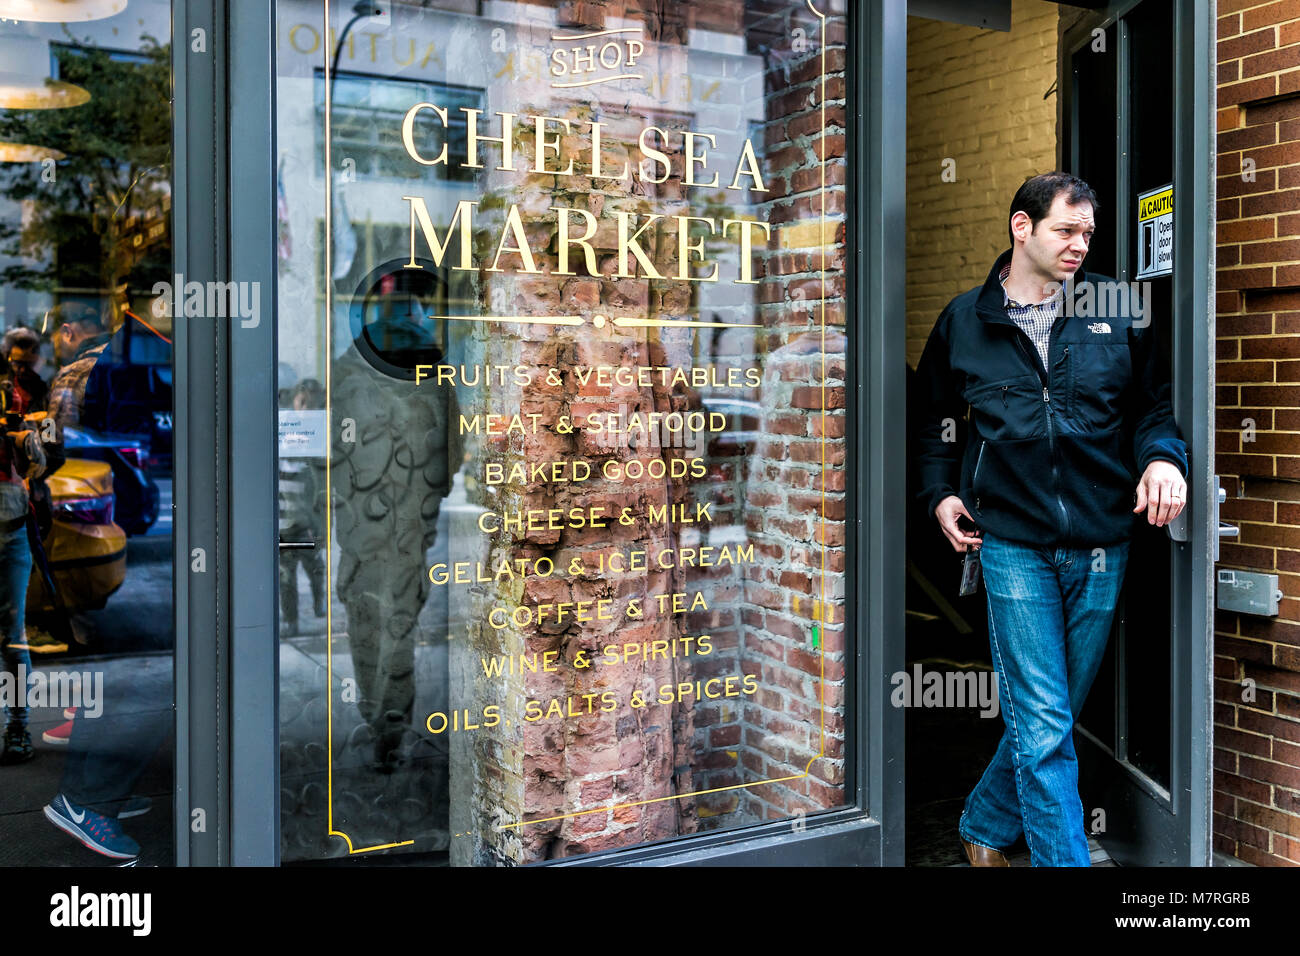 New York City, USA - October 30, 2017: Market food shop entrance in downtown lower Chelsea neighborhood district - Stock Image